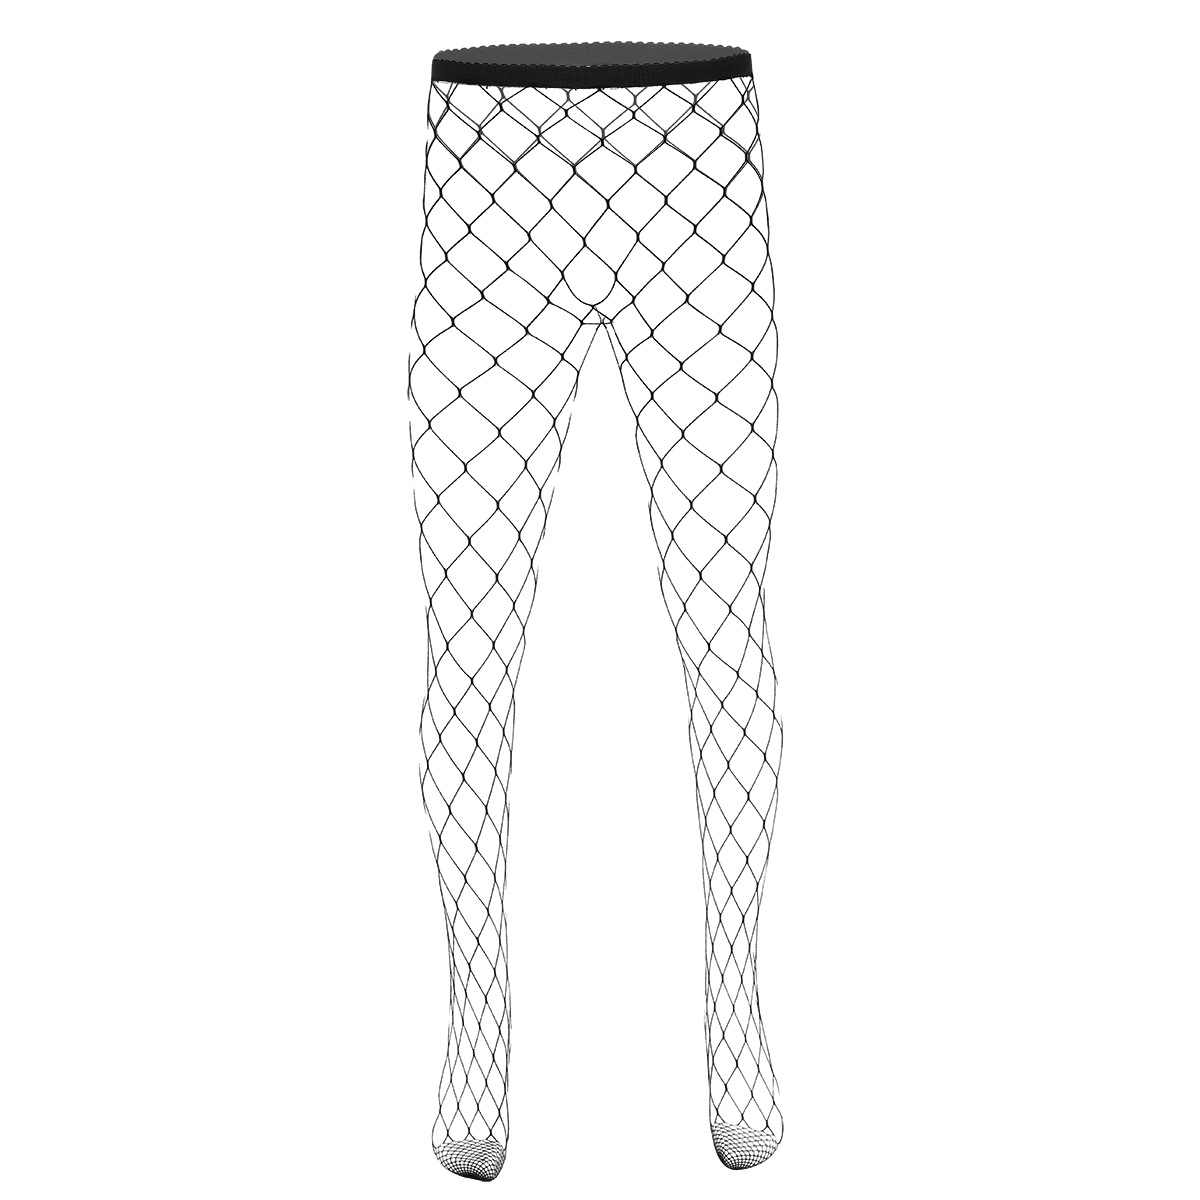 iEFiEL Mens See Through Sheer Fishnet Leggings Pantyhose Stockings Good Stretchy Closed Toes Hollow-out Pantyhose Exotic Hosiery